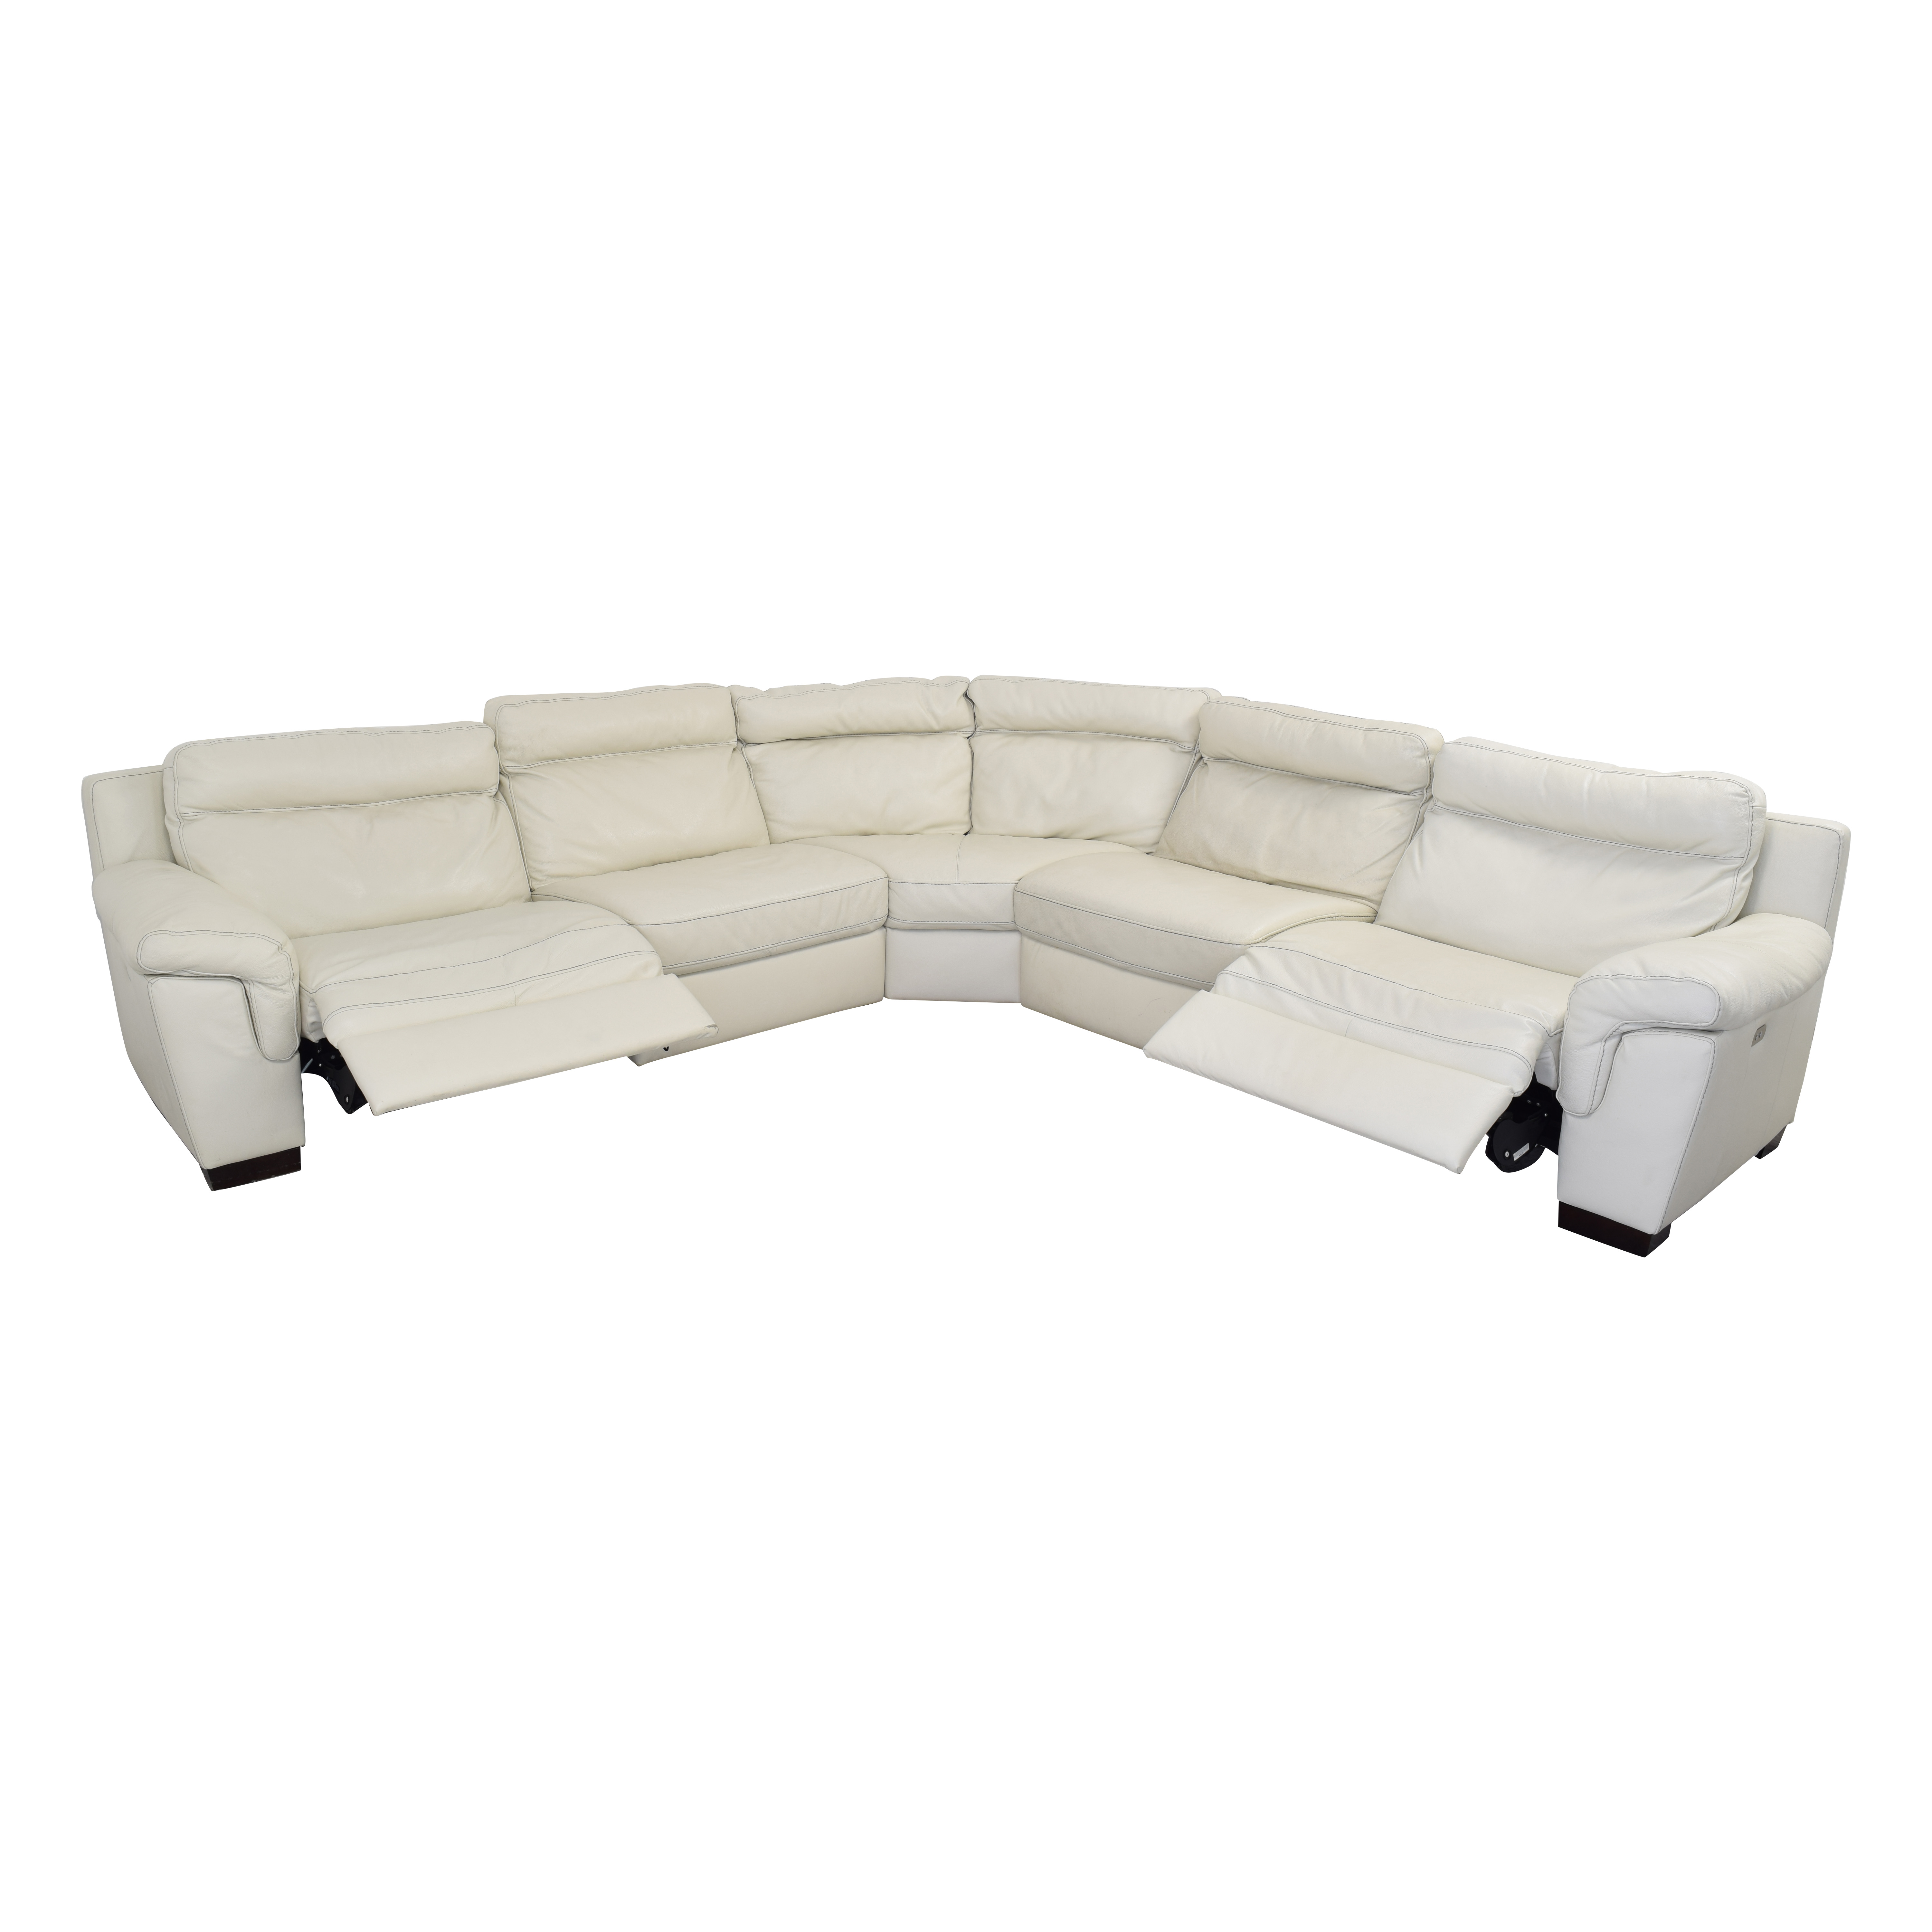 buy Macy's Leather Sectional Sofa with Reclining Seats Macy's Sectionals